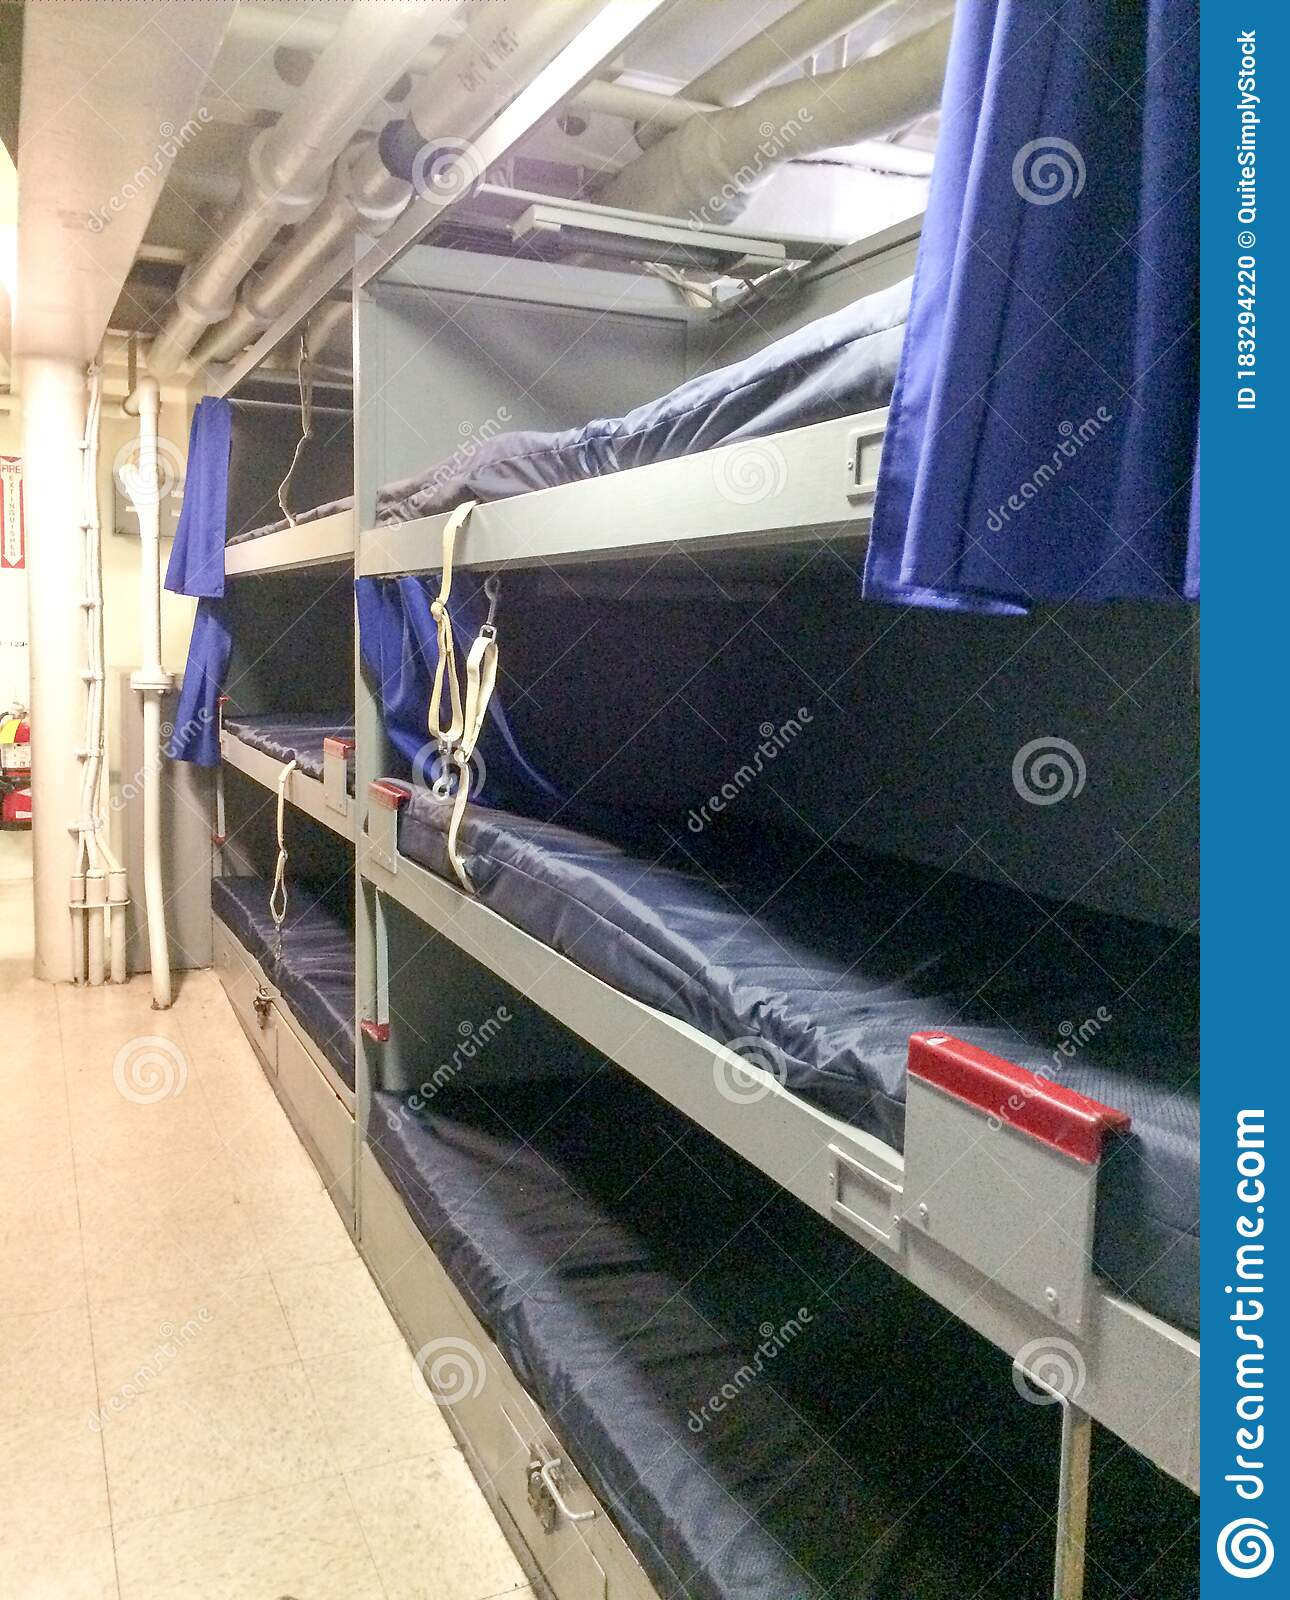 161 Bunk Ship Photos Free Royalty Free Stock Photos From Dreamstime